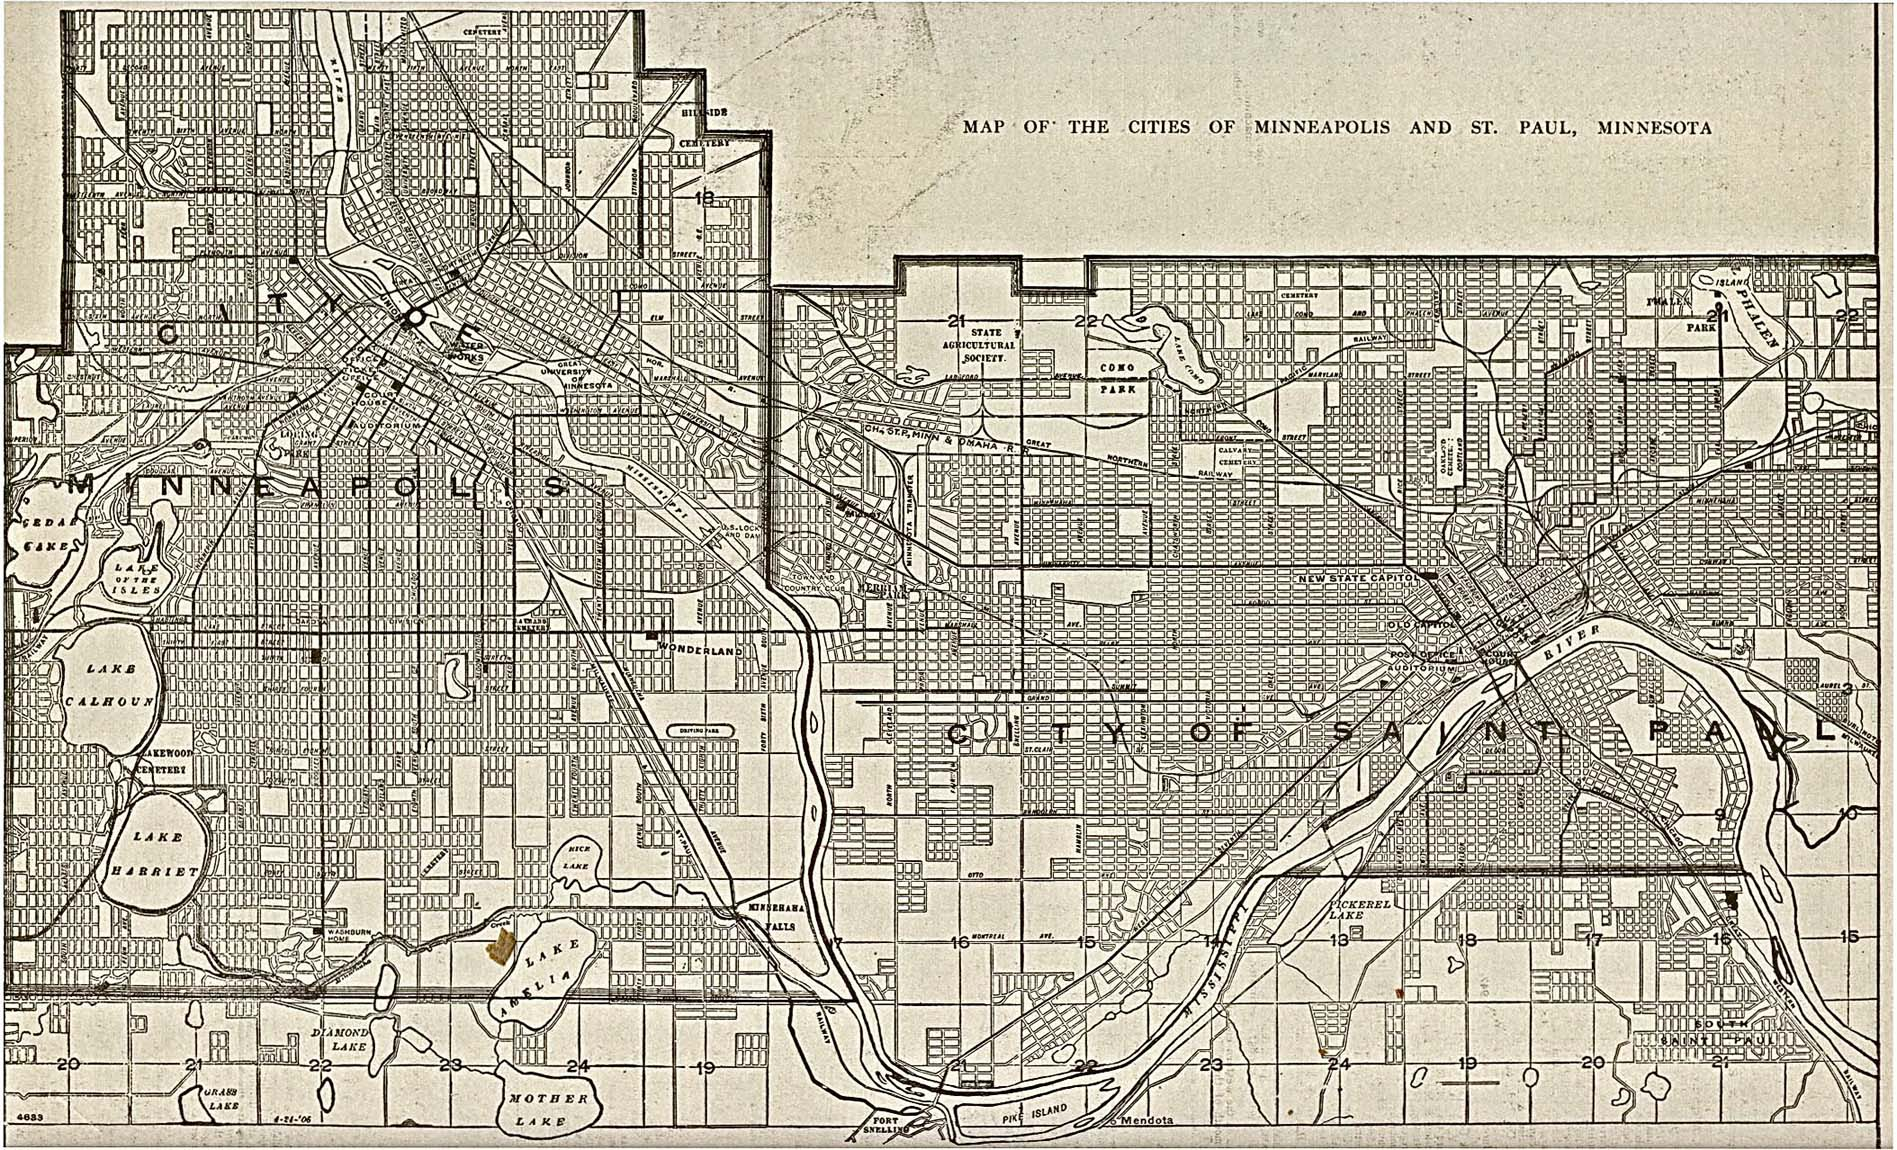 Minnesota Maps - Perry-Castañeda Map Collection - UT Library Online